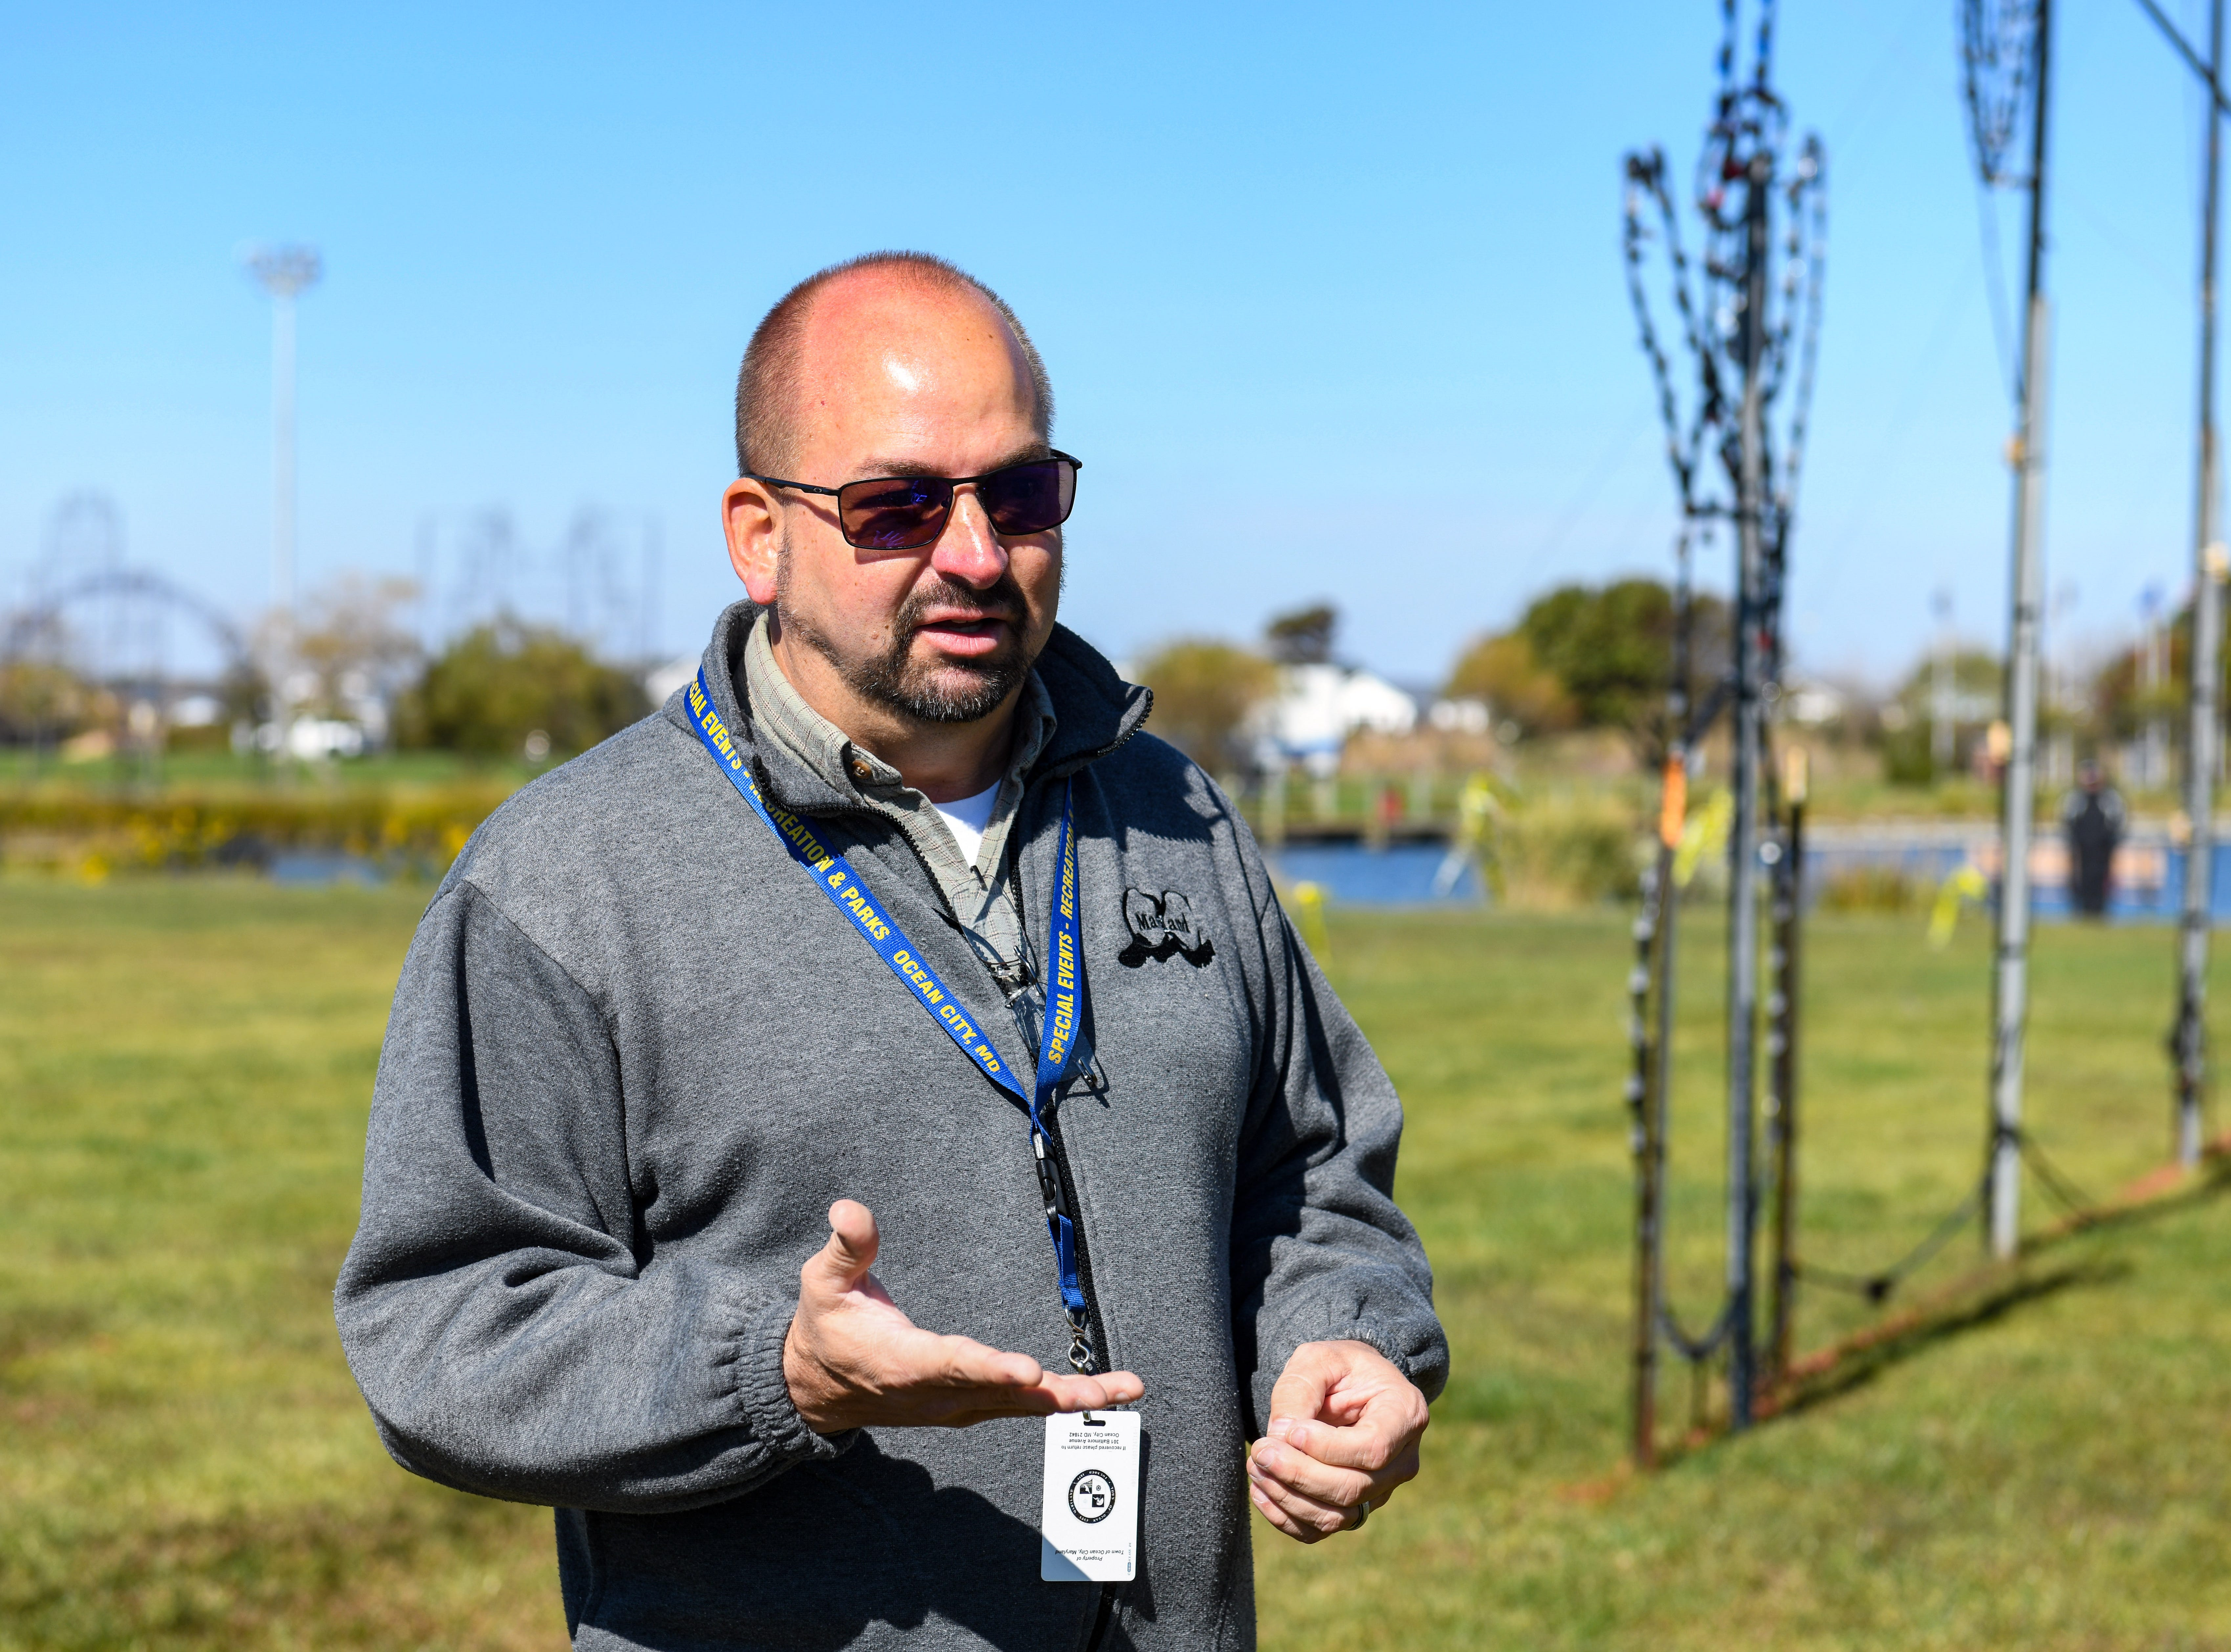 Frank Miller, Ocean City special events director, talks about the town's busy event schedule in Northside Park on Monday, Oct 22, 2018.